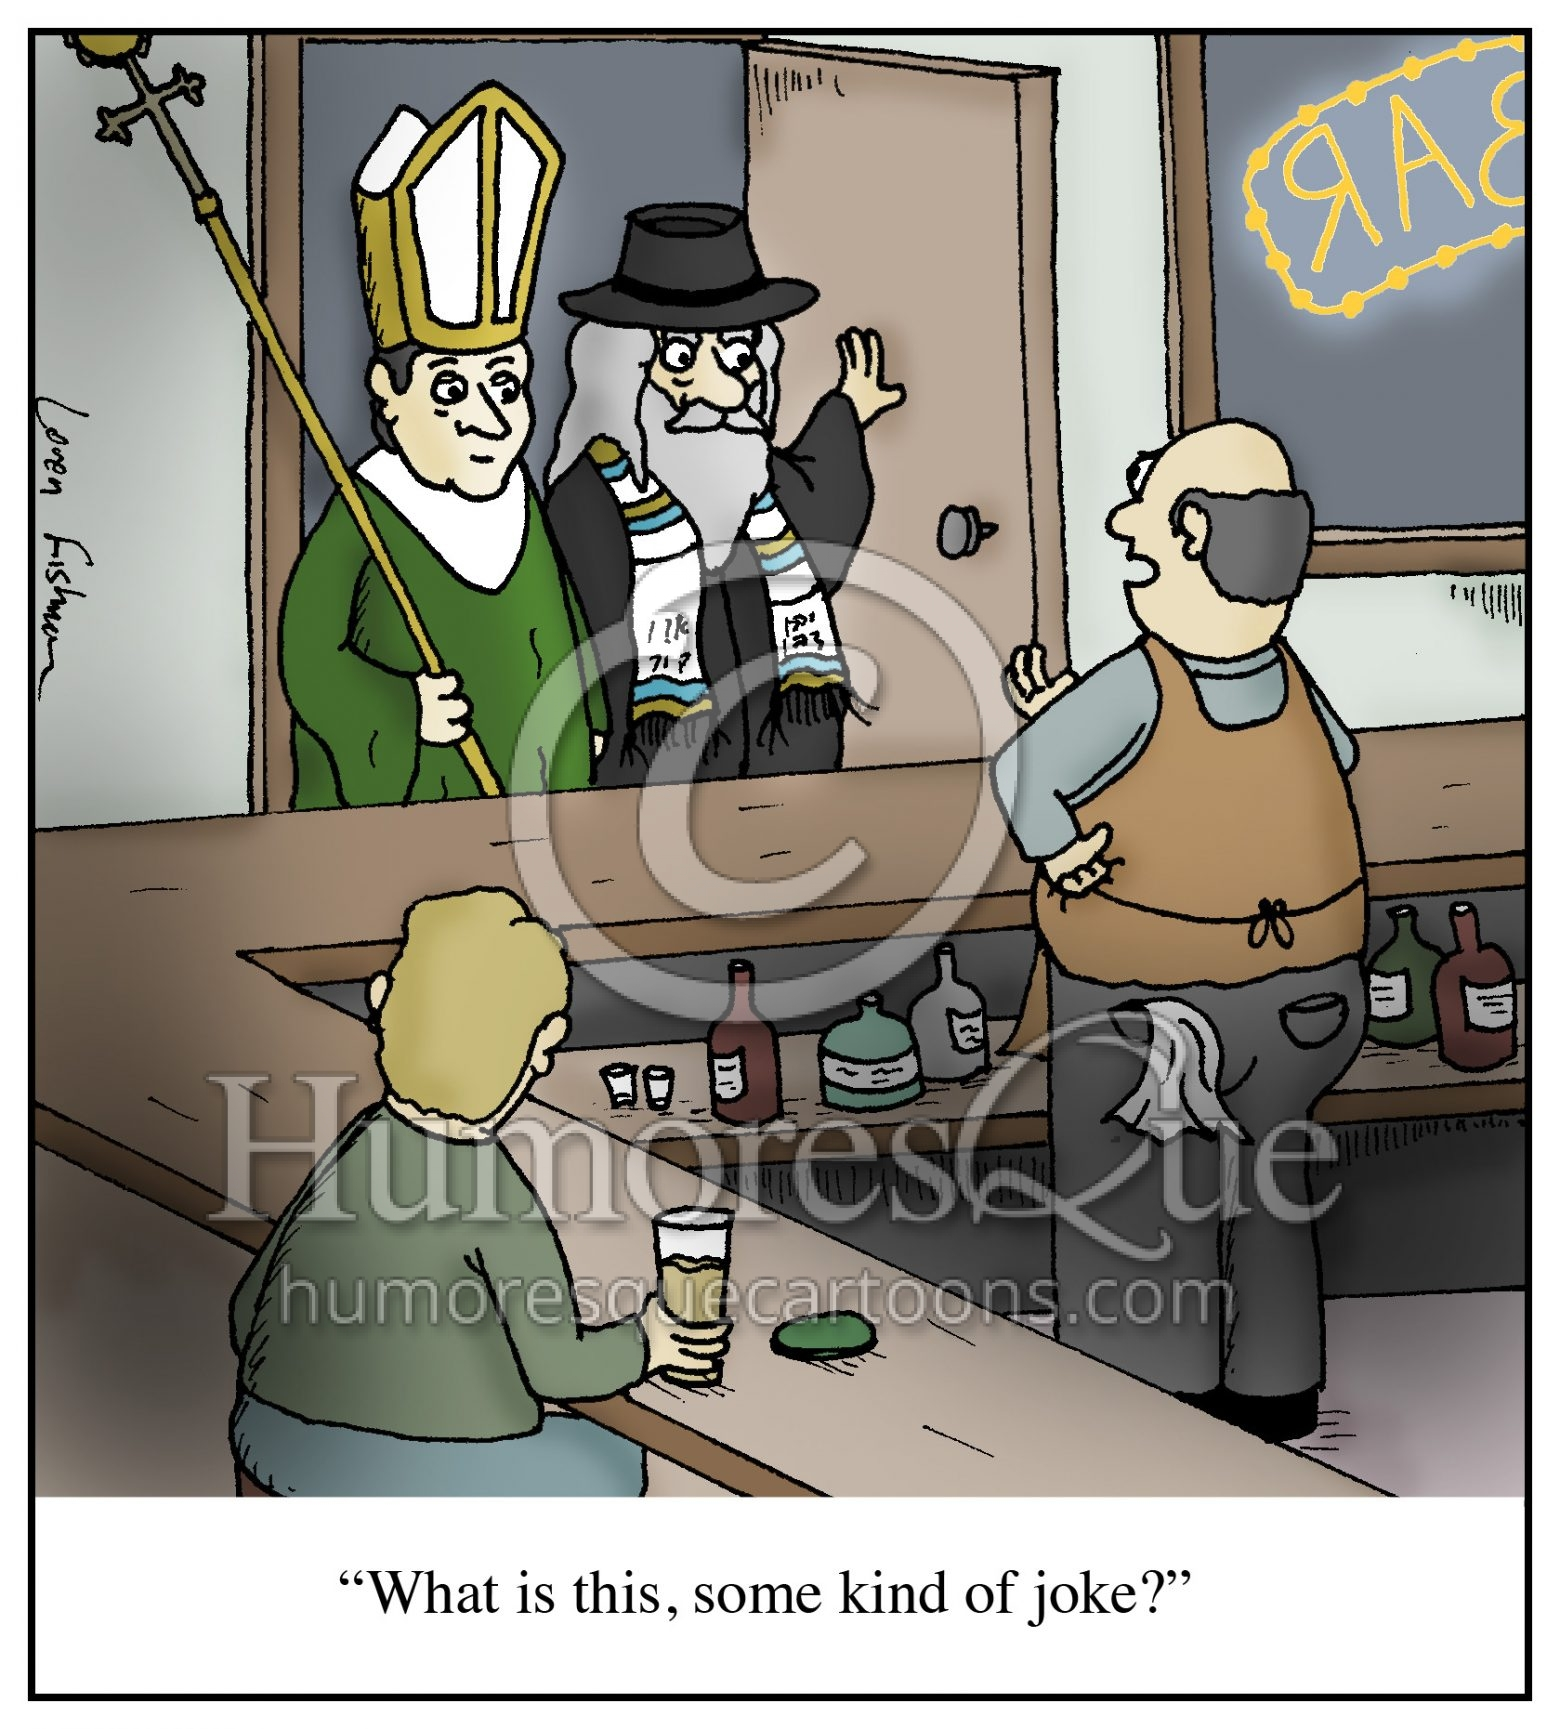 pope and rabbi walk into a bar joke cartoon